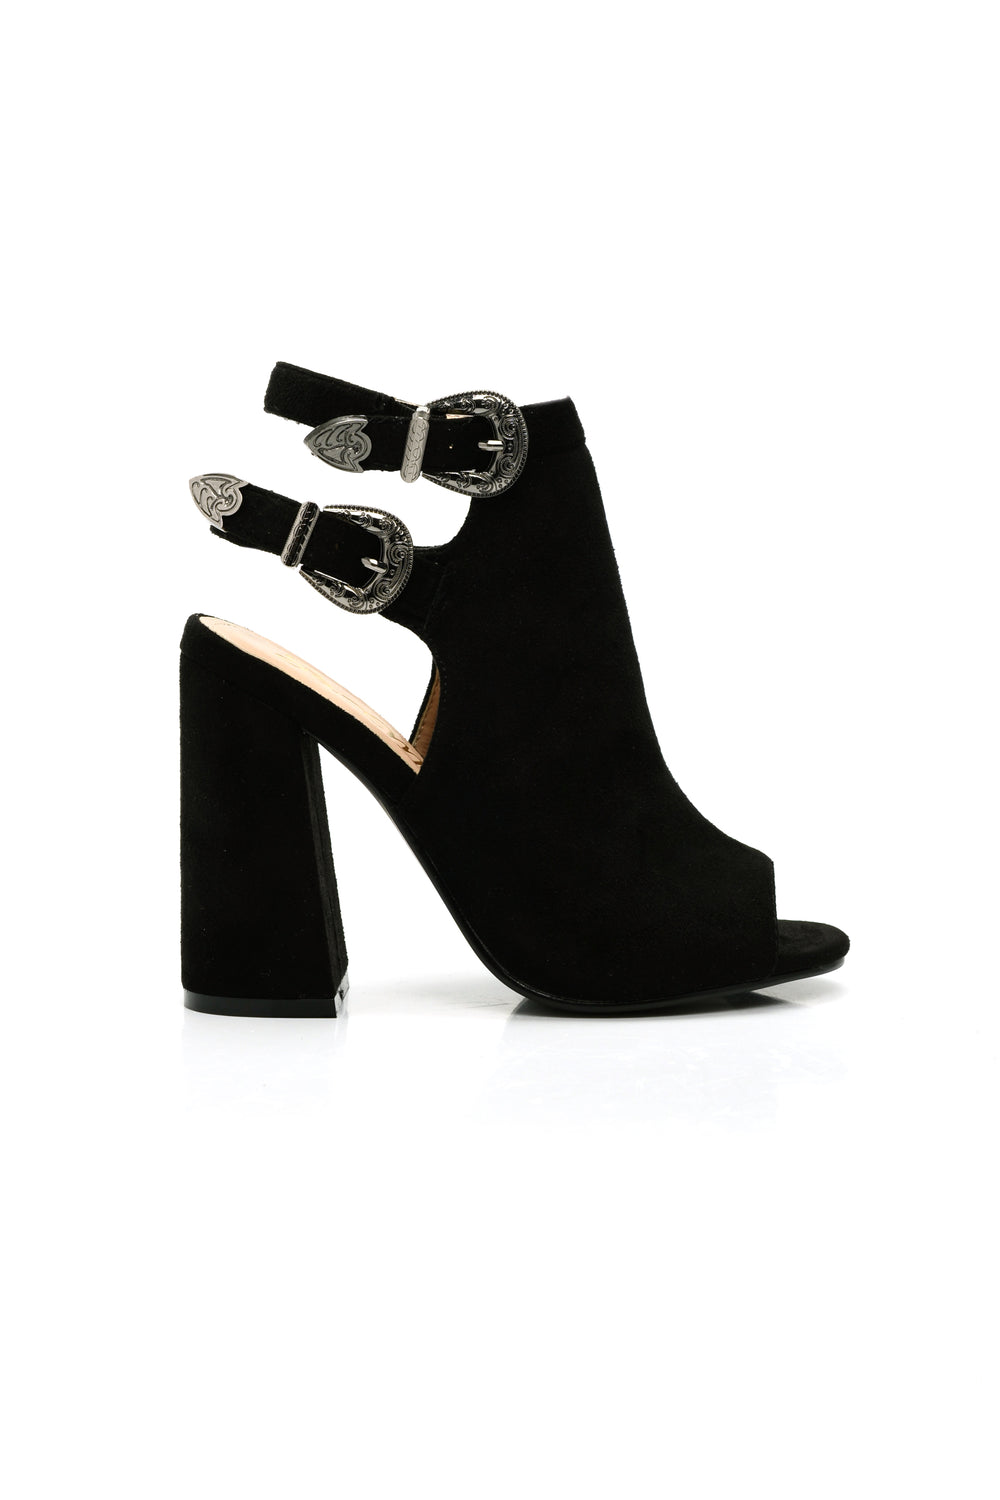 Be Better Buckle Bootie - Black